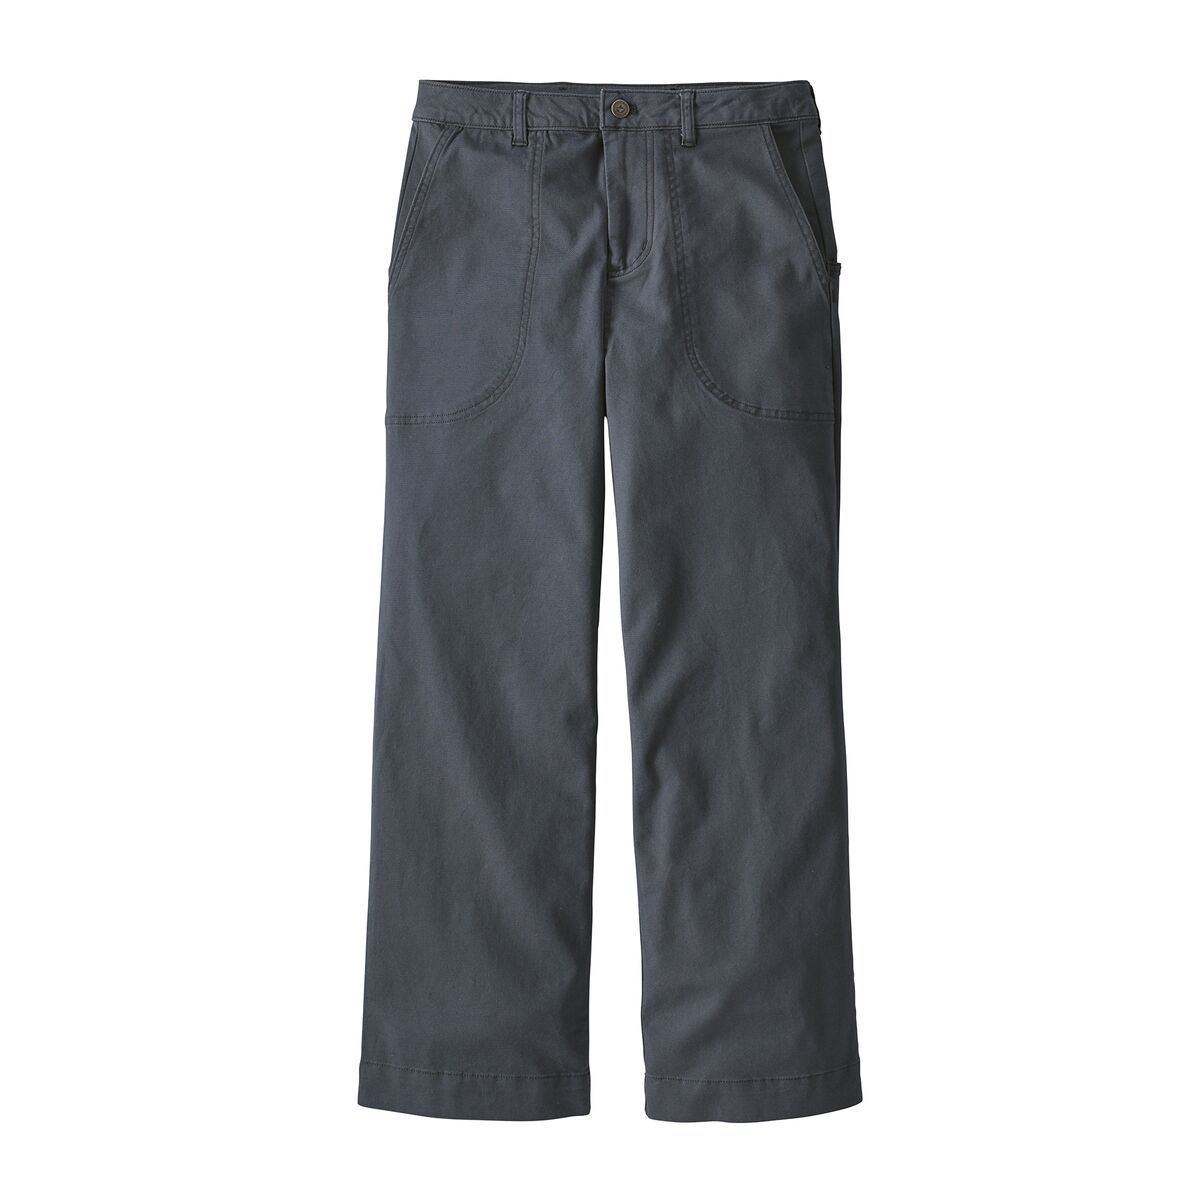 Patagonia Women's Iron Forge Hemp™Canvas Double Knee Pants Regular